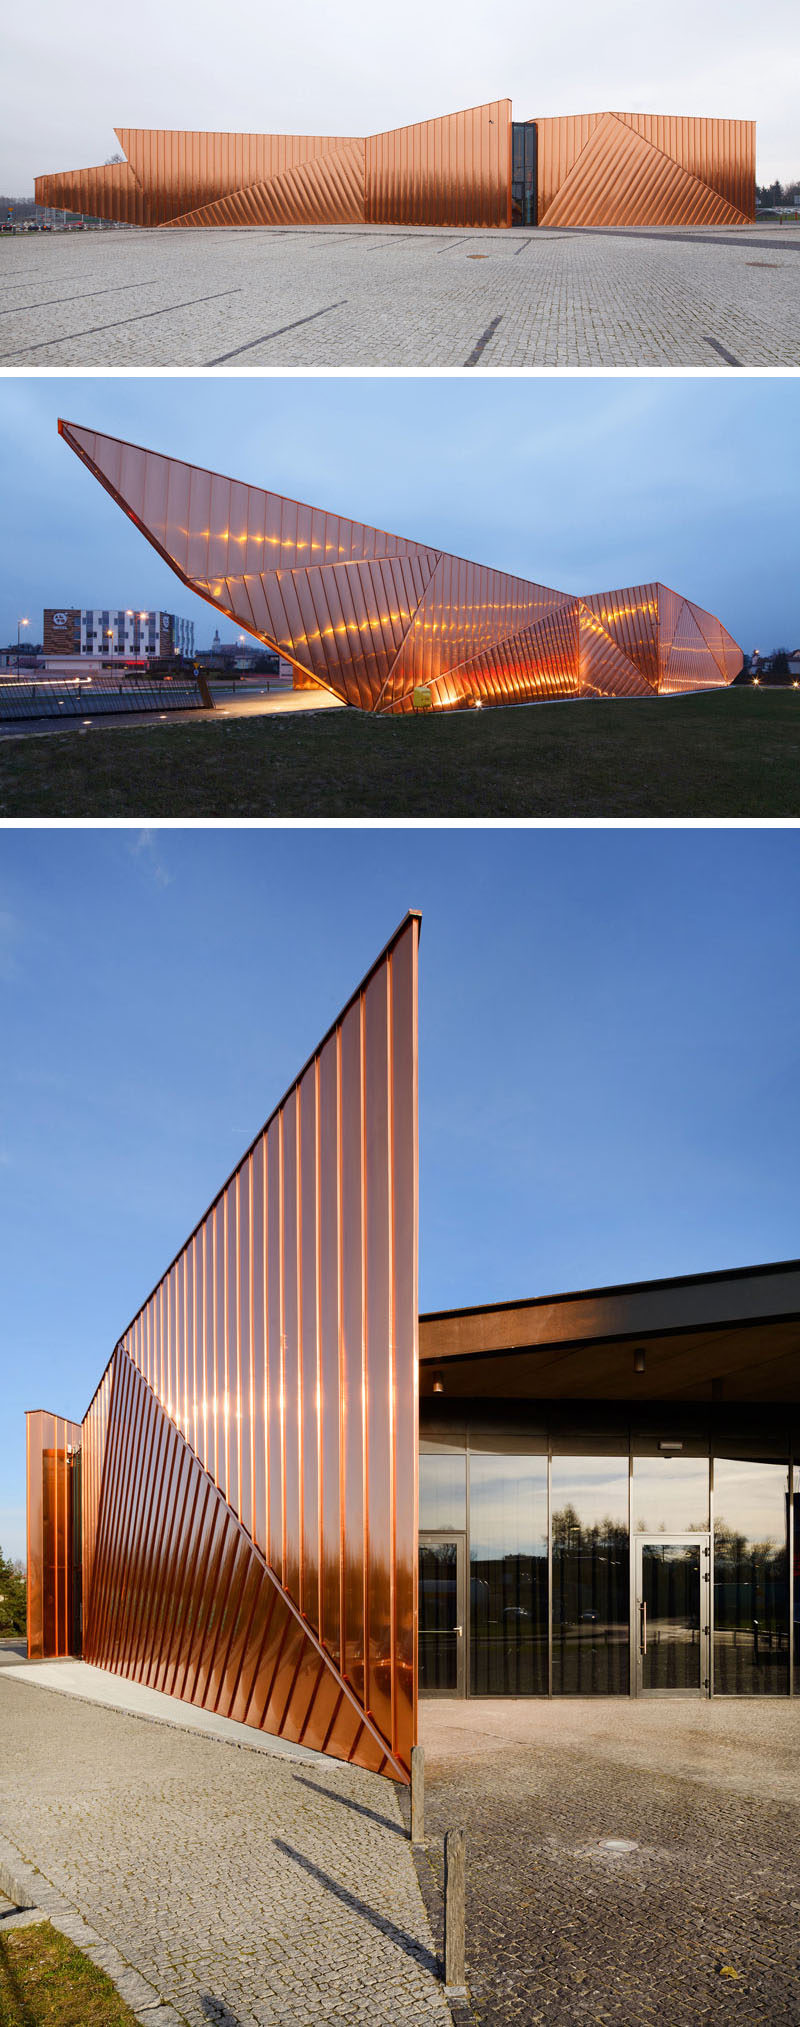 Copper plates cover the exterior of the Museum of Fire in Zory, Poland, as a tribute to the fire that took out an entire forest and made way for the development of the Polish city.